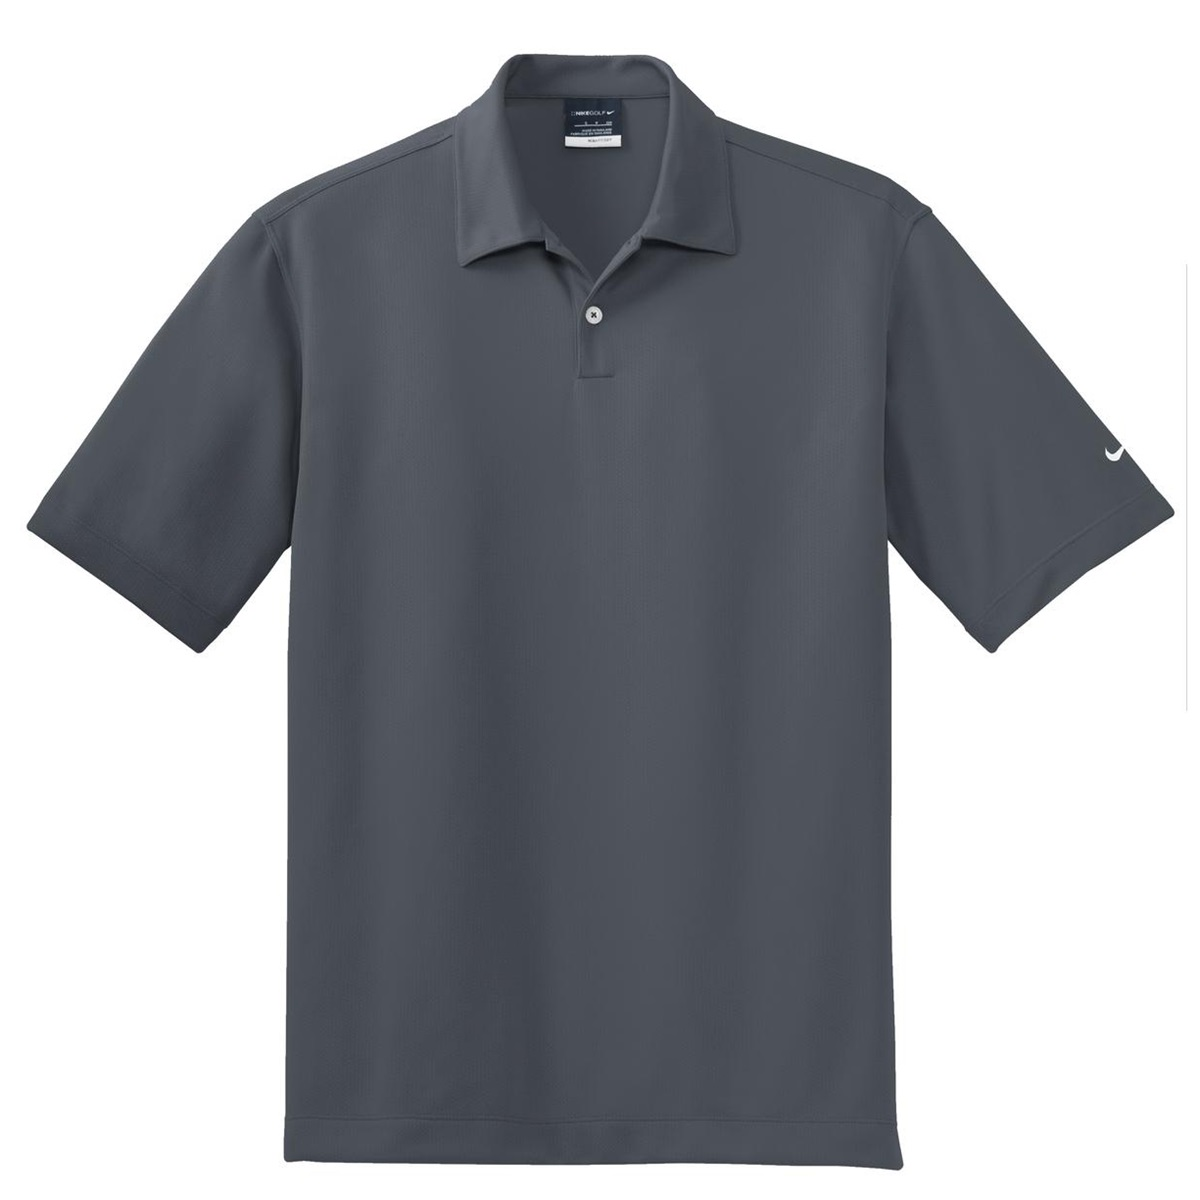 Grey And Dark Blue Bedroom Ideas: Nike Golf 373749 Dri-FIT Pebble Texture Polo